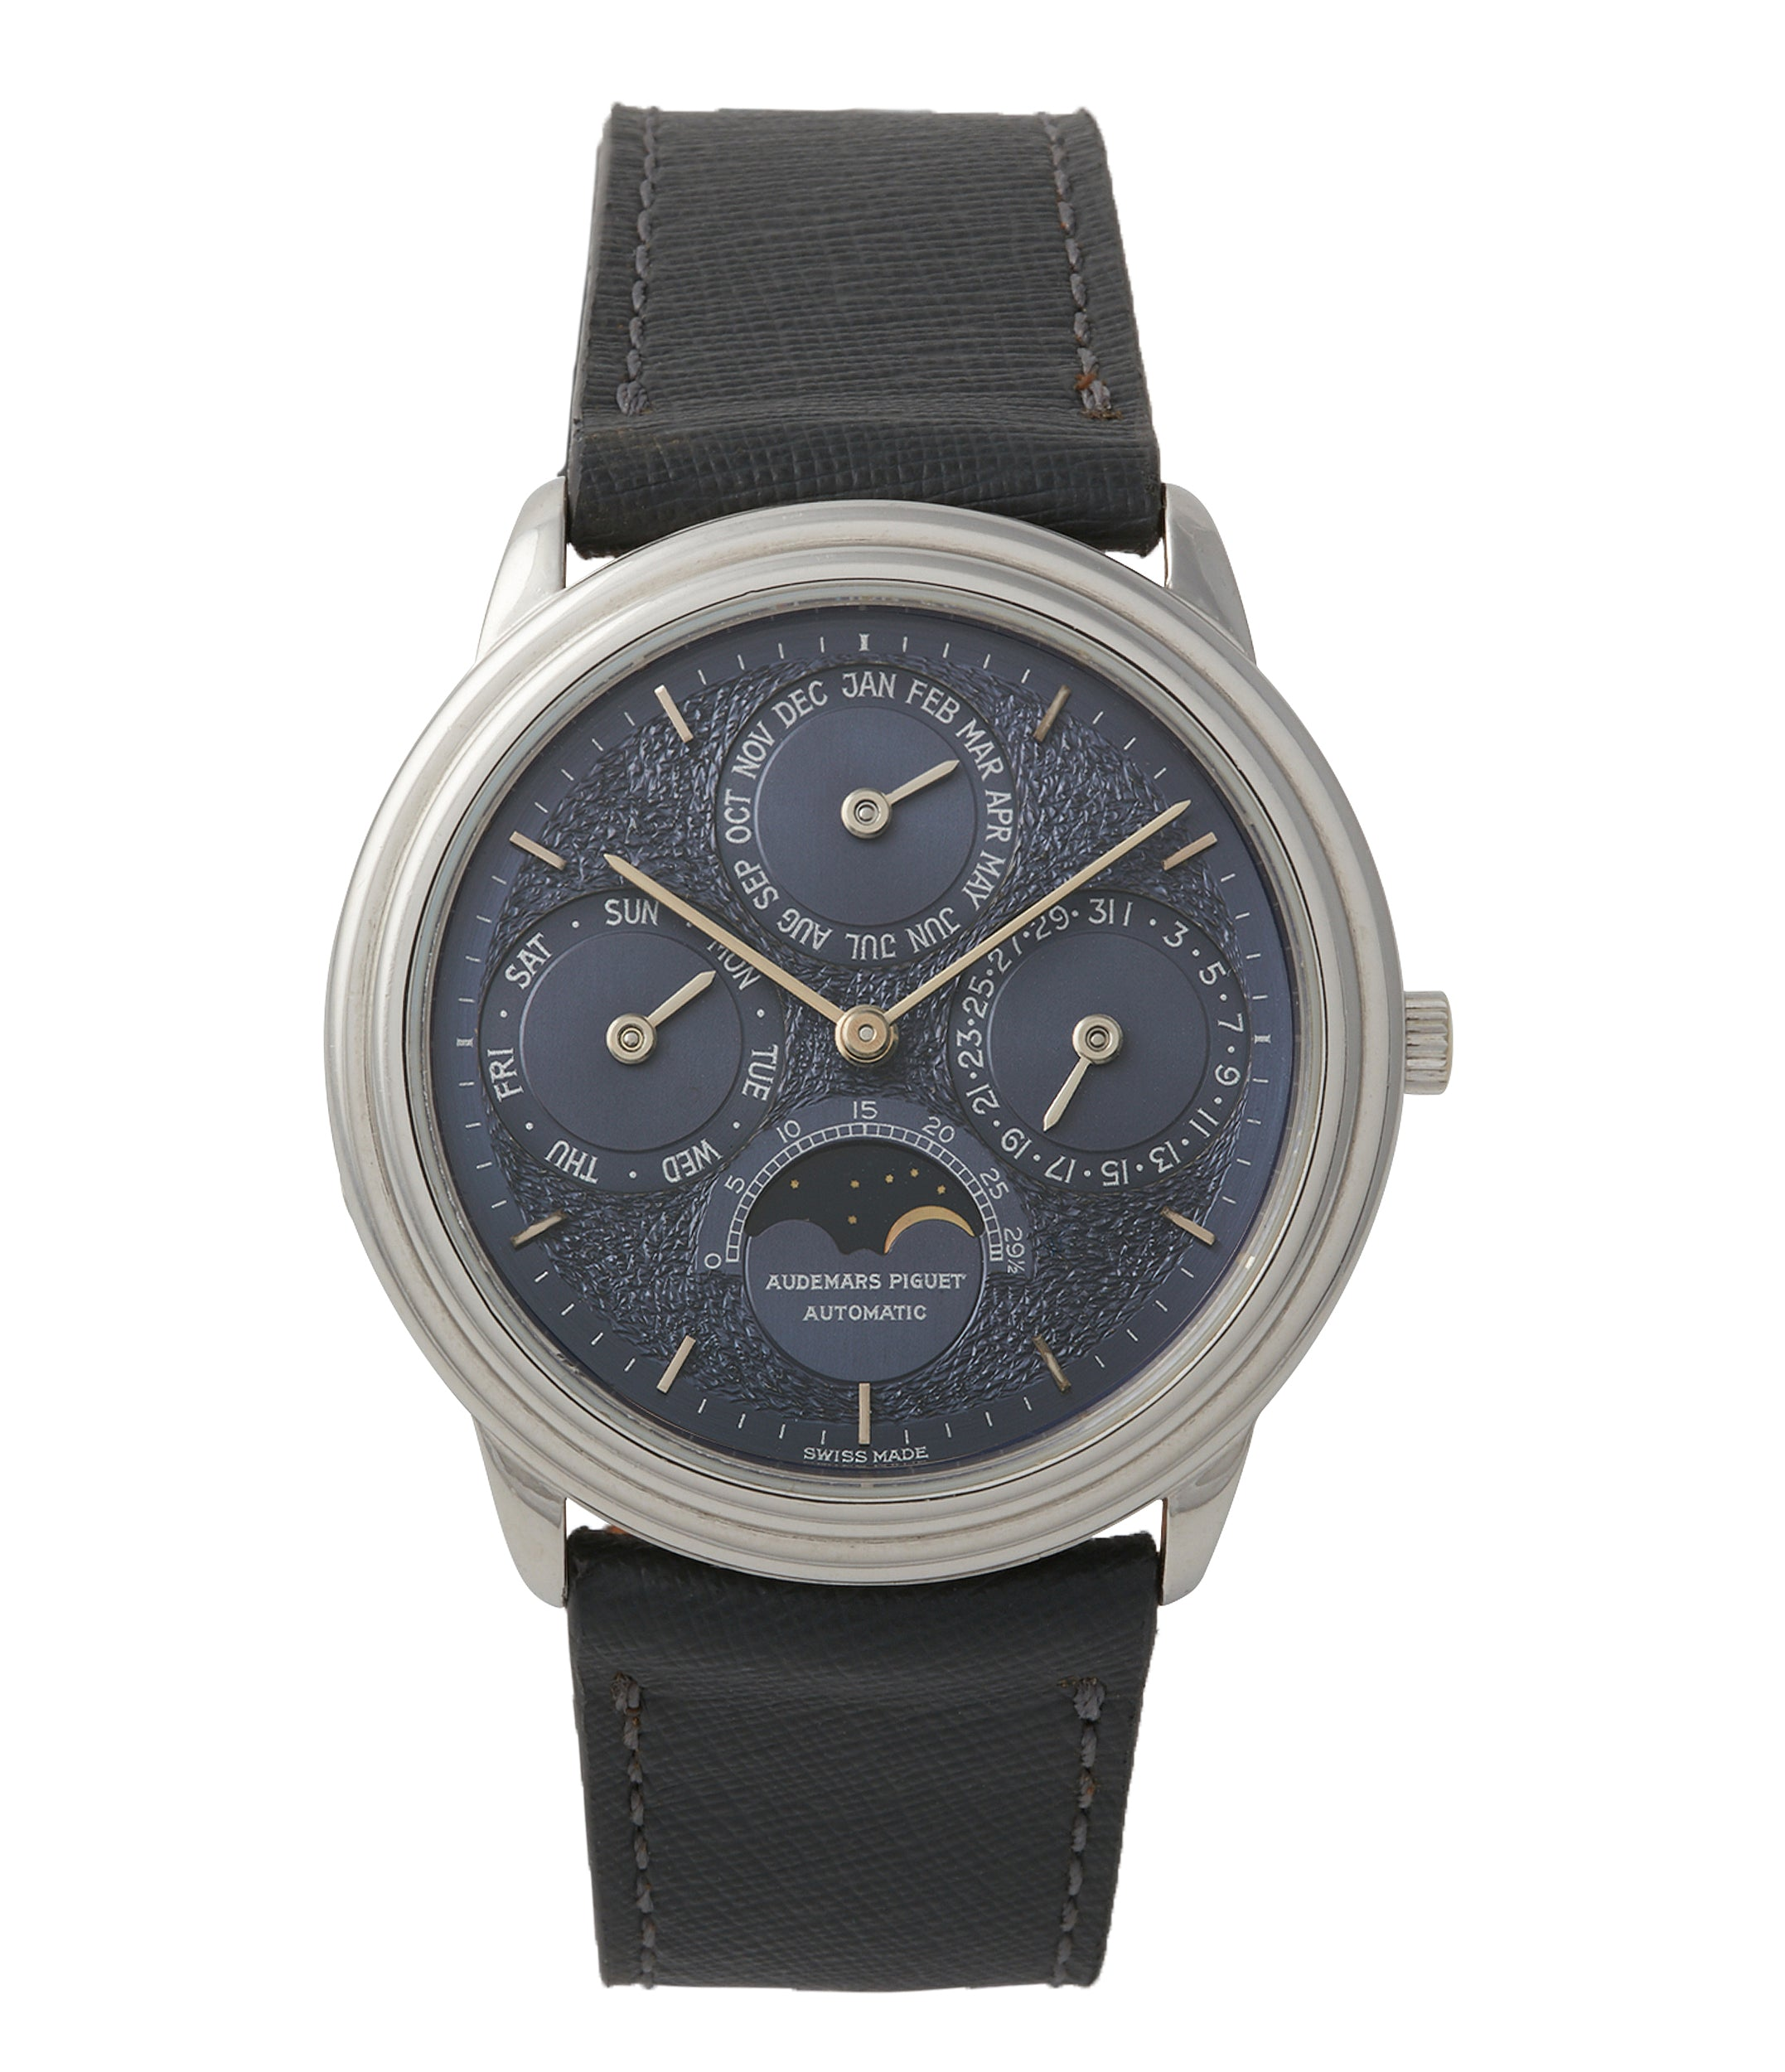 buy Audemars Piguet Quantieme Perpetual Calendar 2120/2 blue dial vintage dress watch for sale online at A Collected Man London UK specialist of rare watches